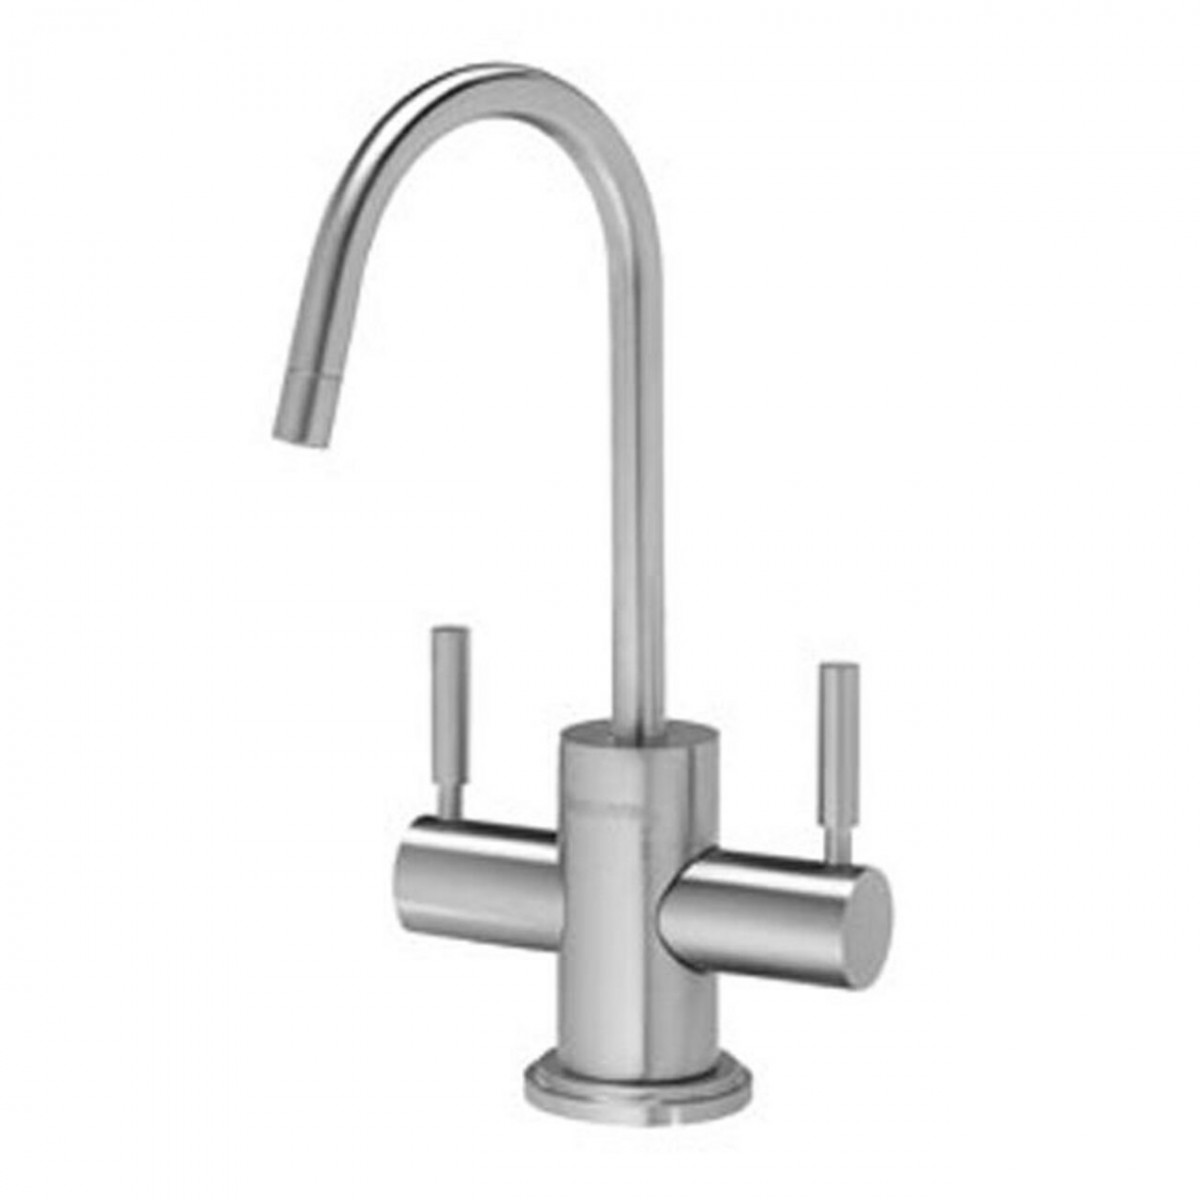 Everpure Helia Designer Drinking Water Faucet EV9000-87 (Brushed SS)